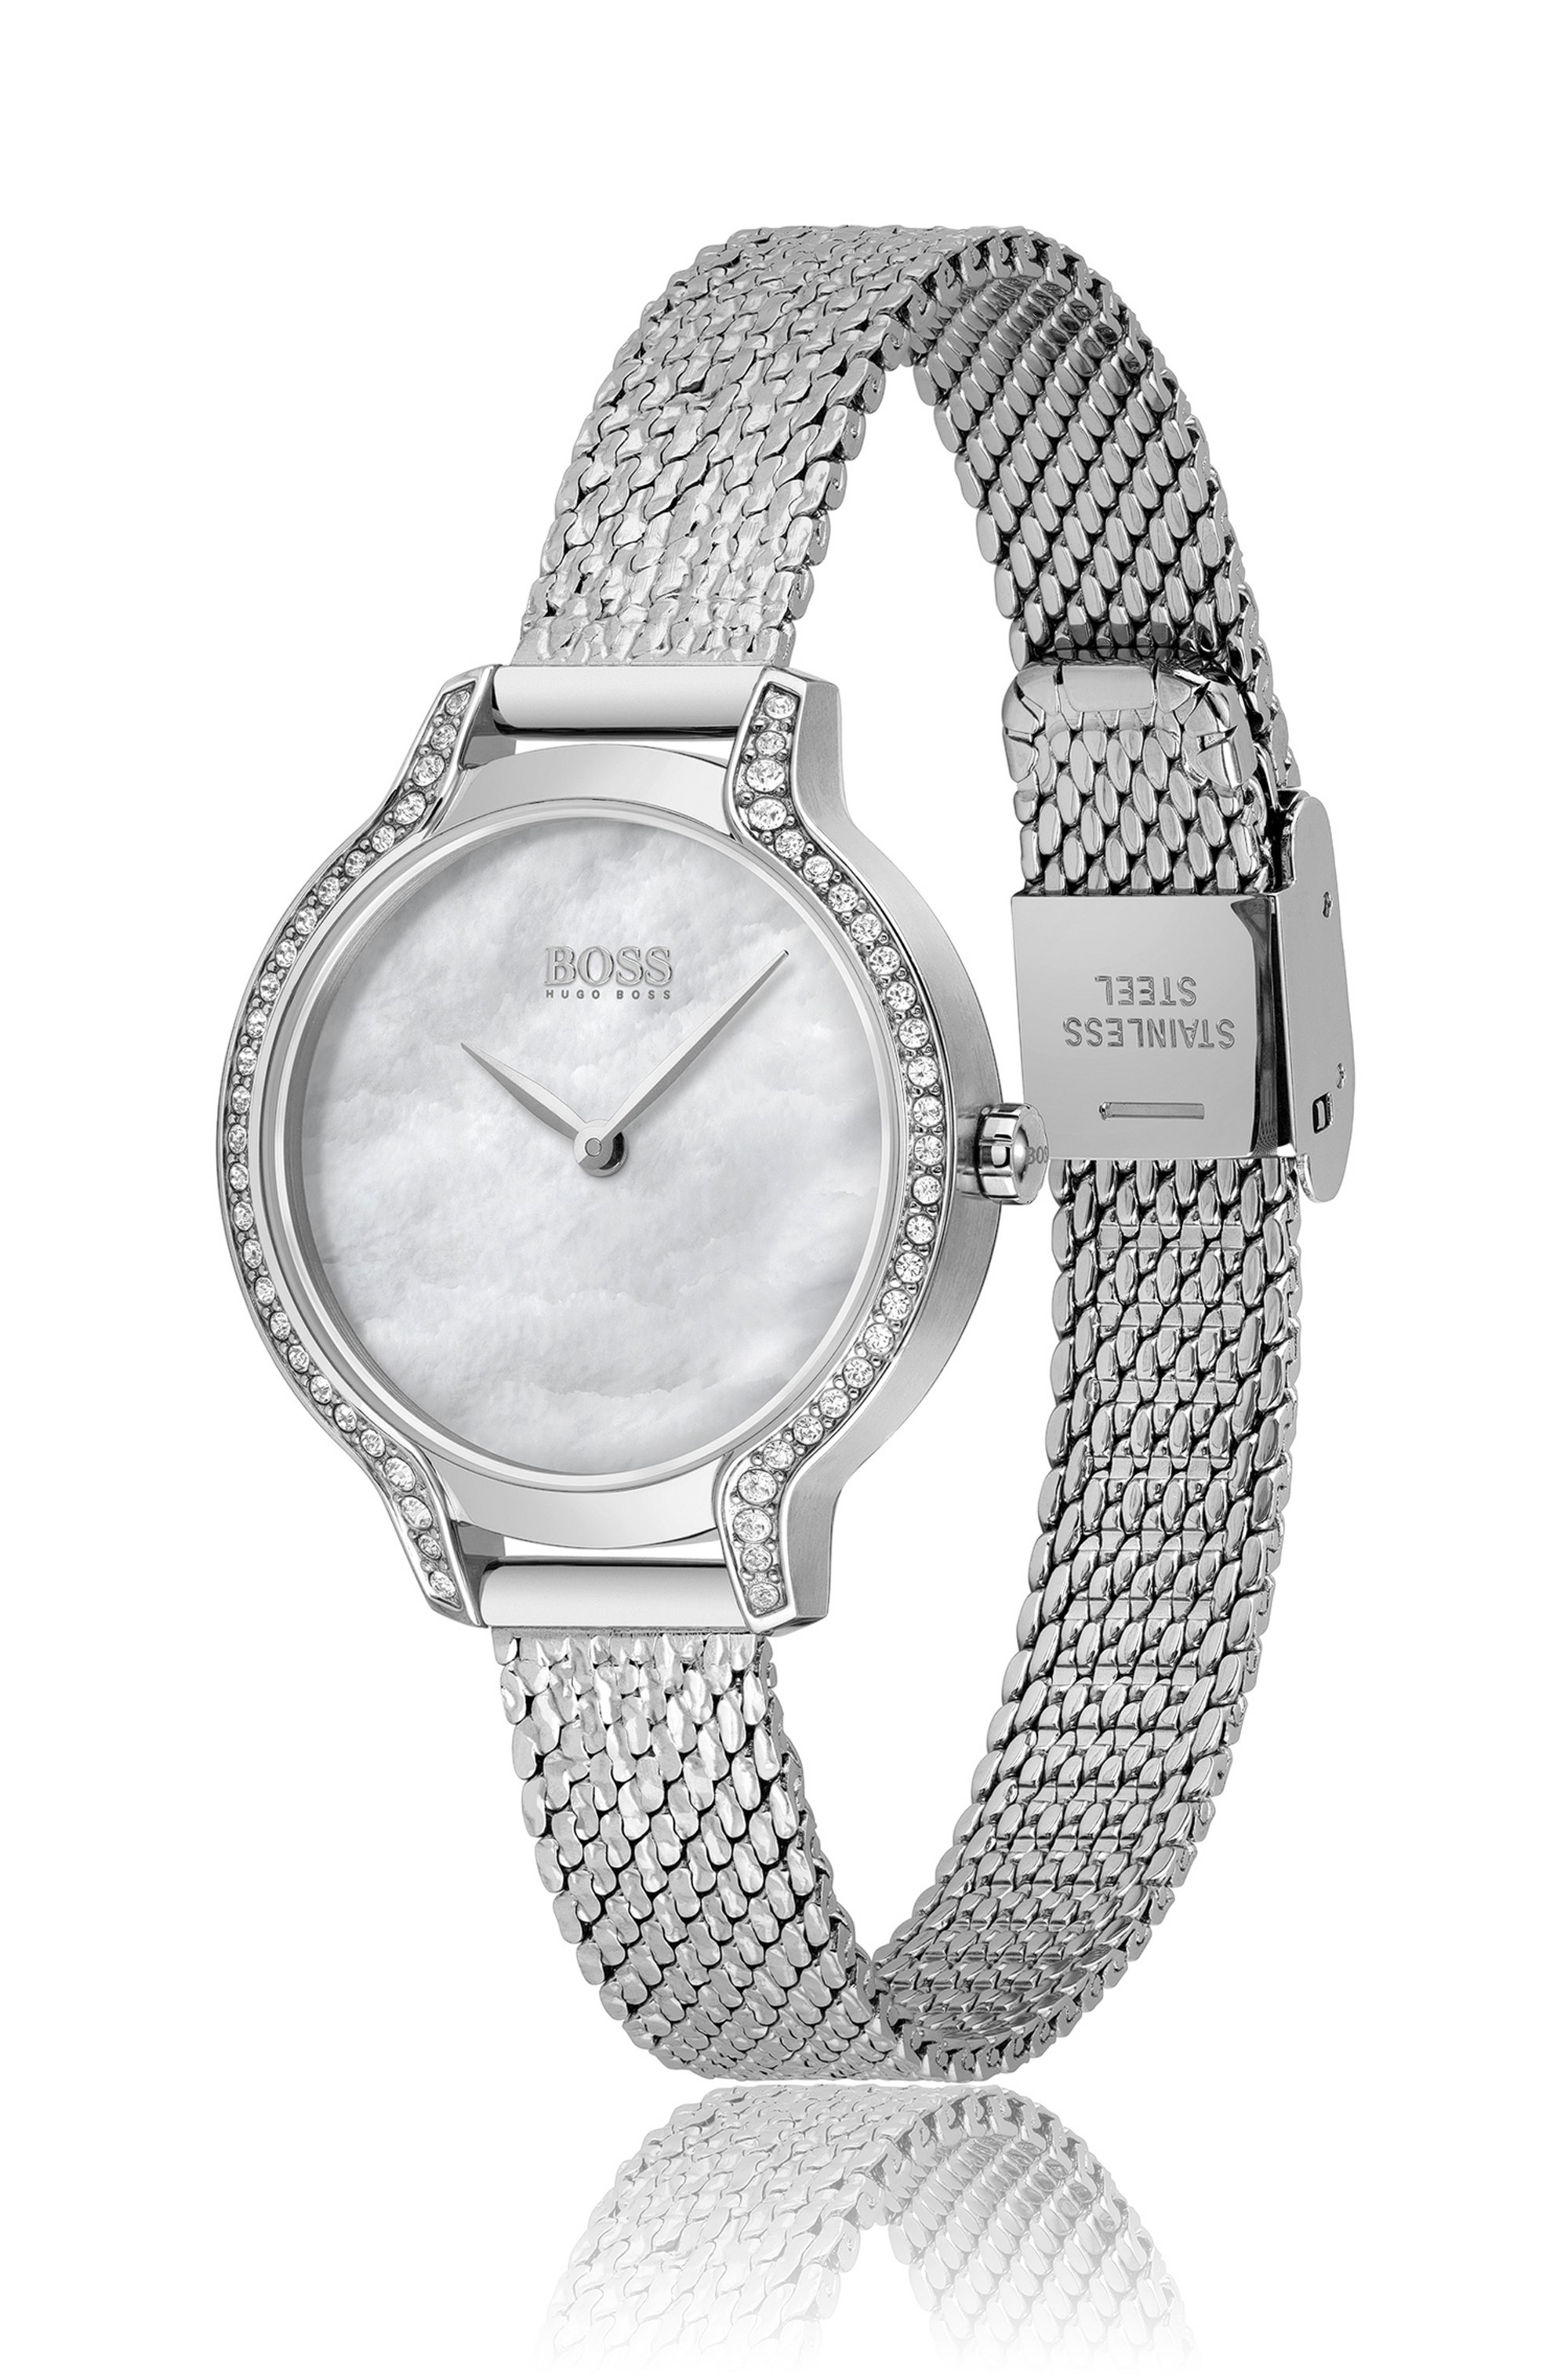 Crystal-studded watch with pressed-mesh bracelet